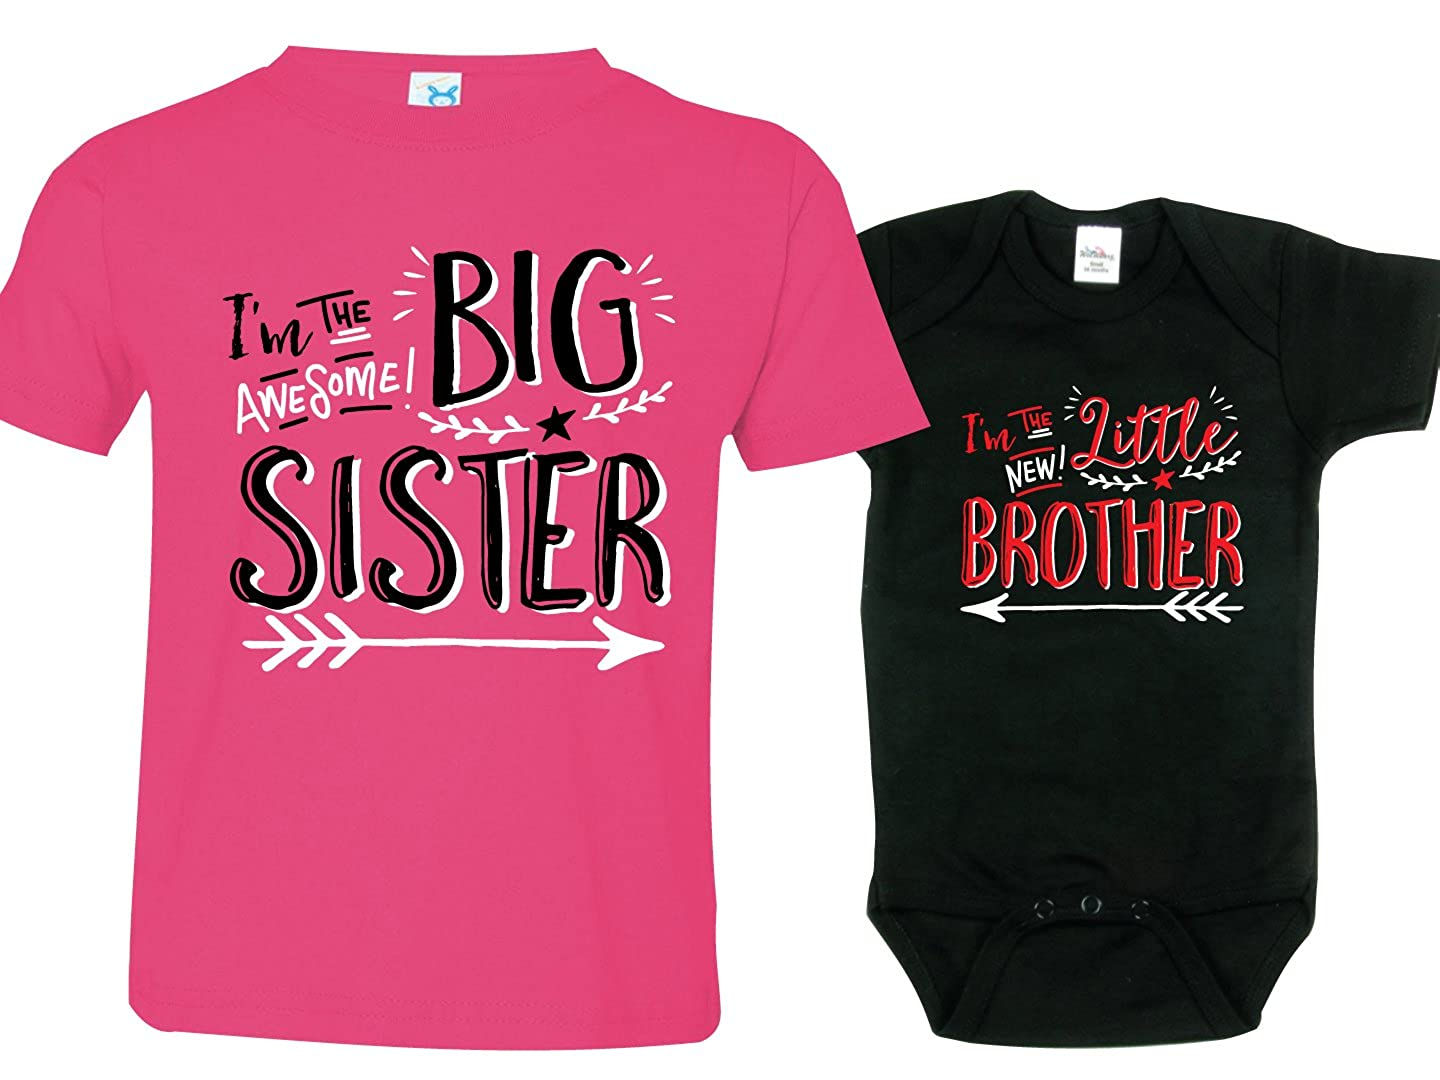 Best Buy big brother shirt ideas - 59% OFF! GY76